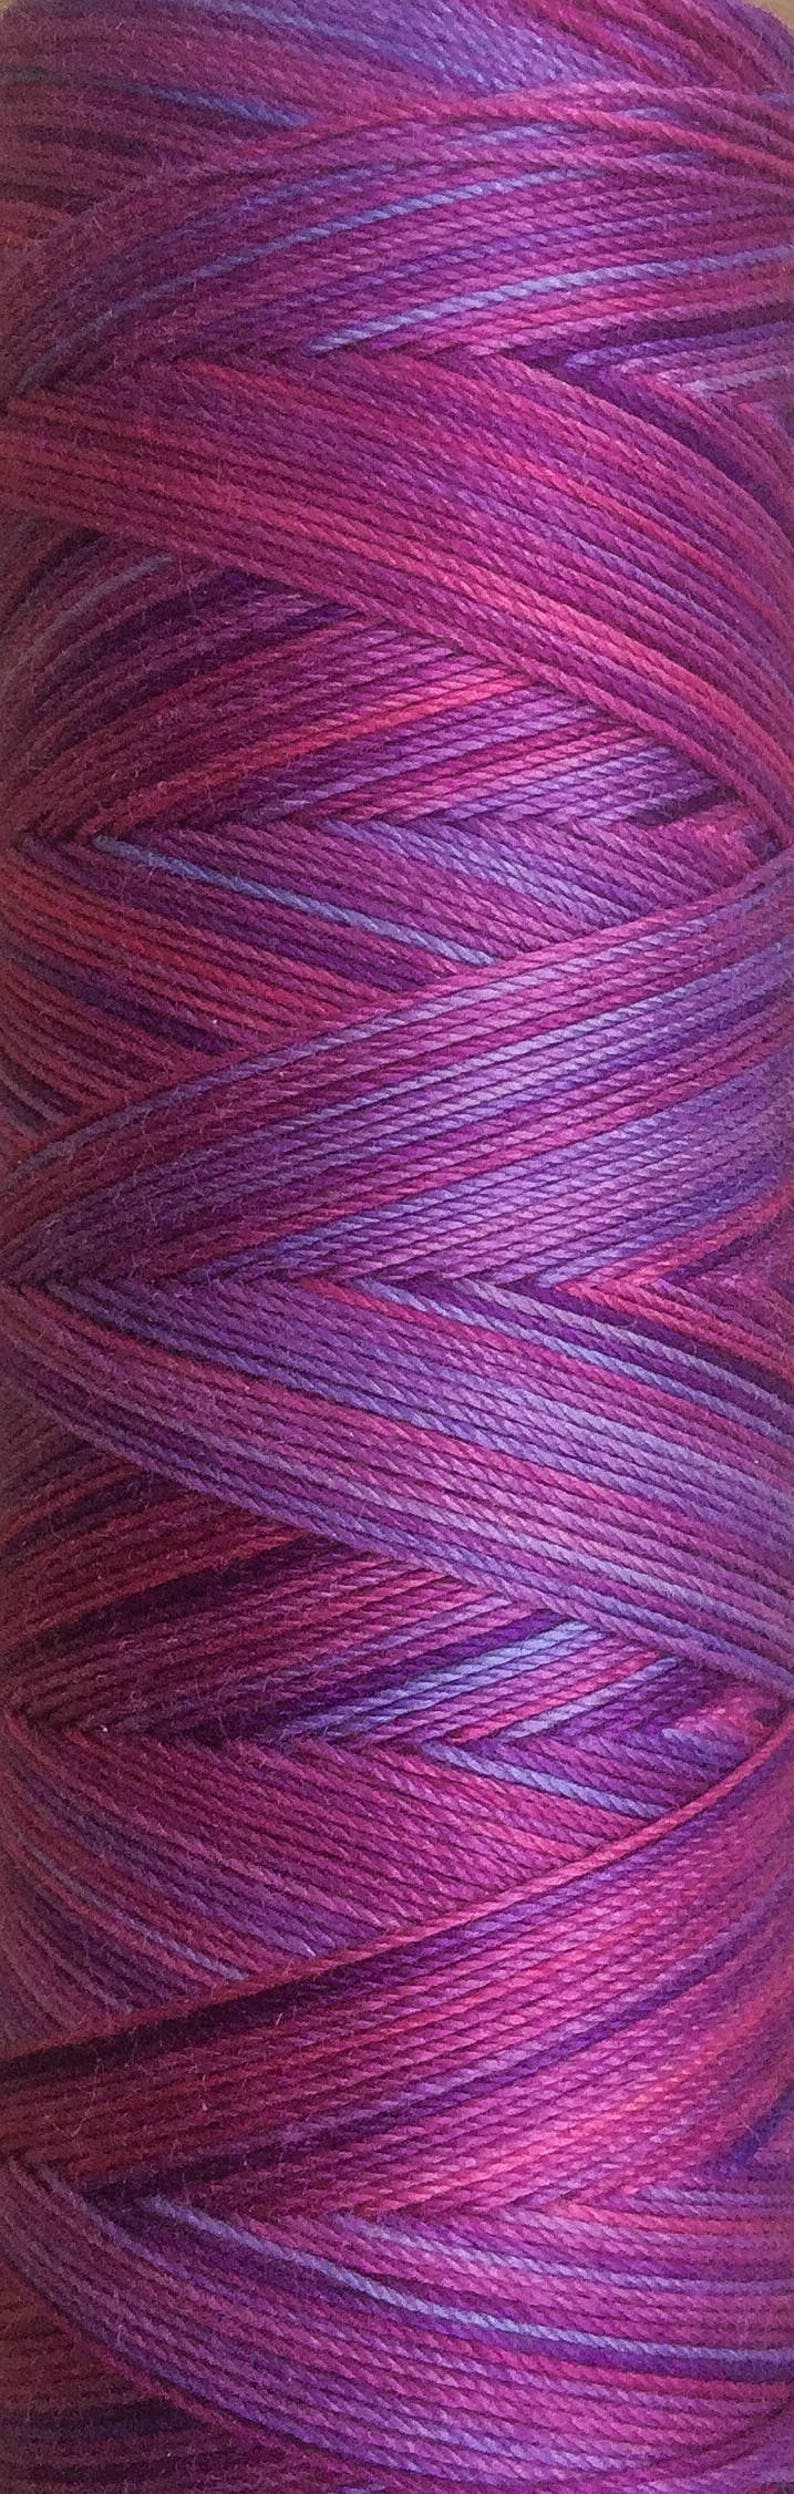 machine Quilting Machine Embroidery Hand Dyed Cotton Machine Thread No.05 Violet Individual Spool 150m